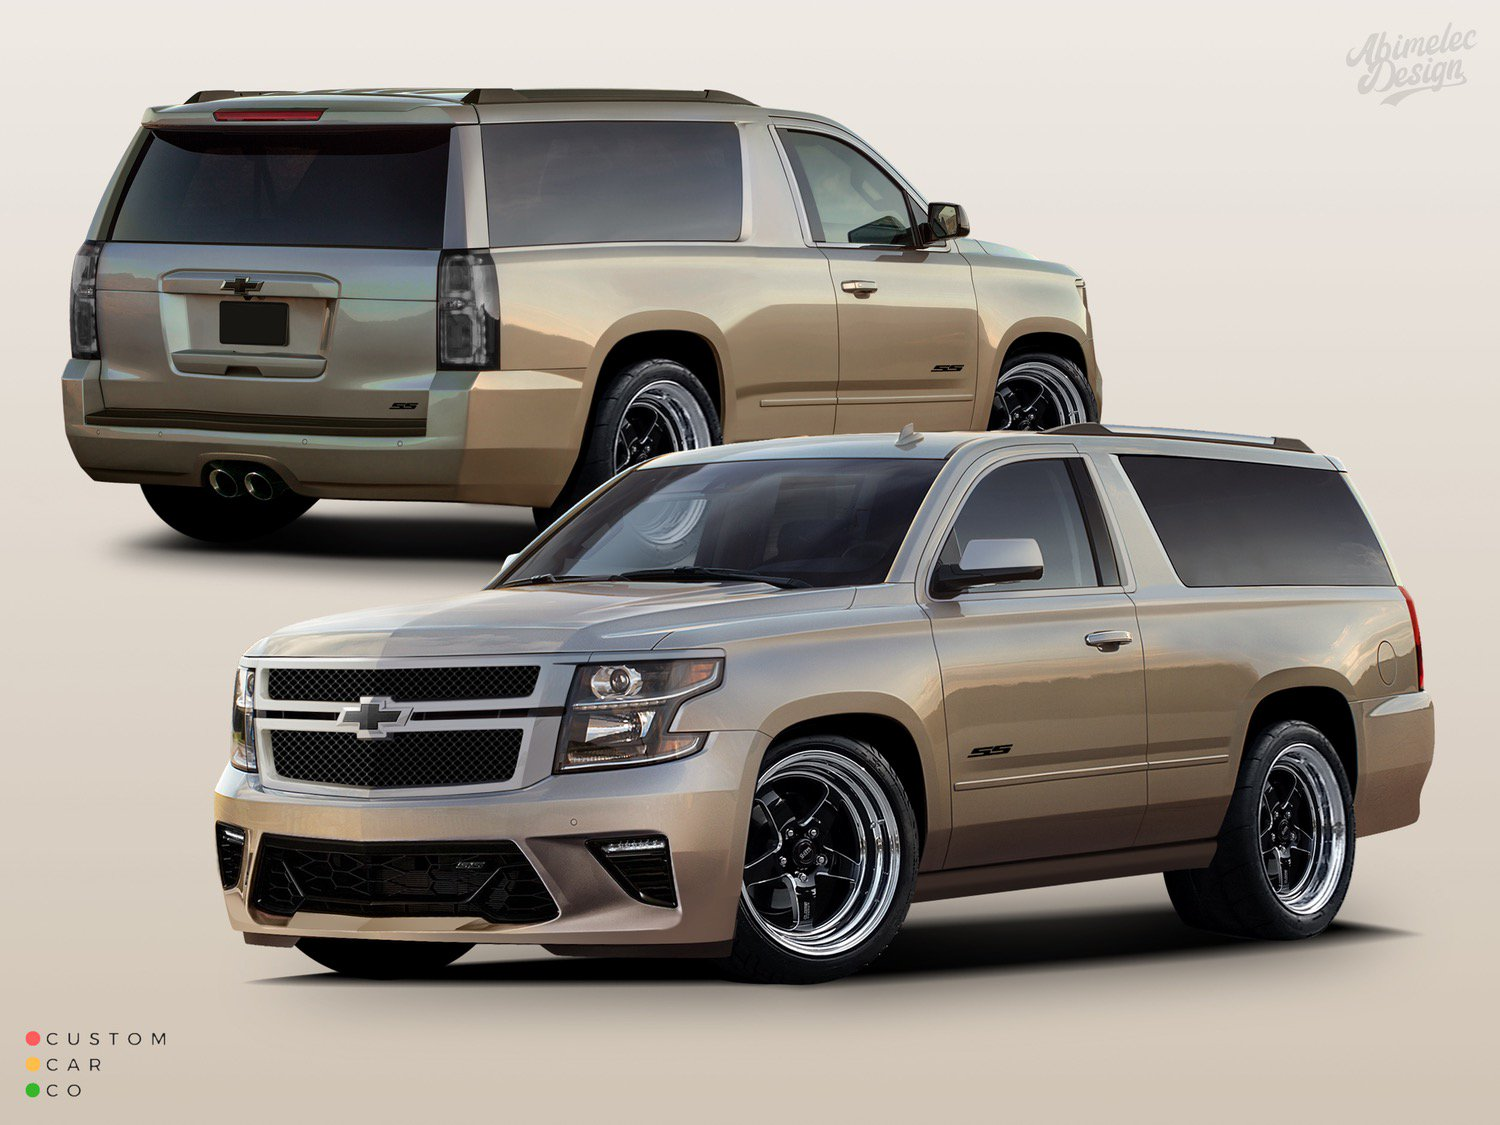 Cadillac Escalade V Coupe Chevrolet Tahoe SS Tuning 2 Cadillac Escalade V oder Chevrolet Tahoe SS Coupe?